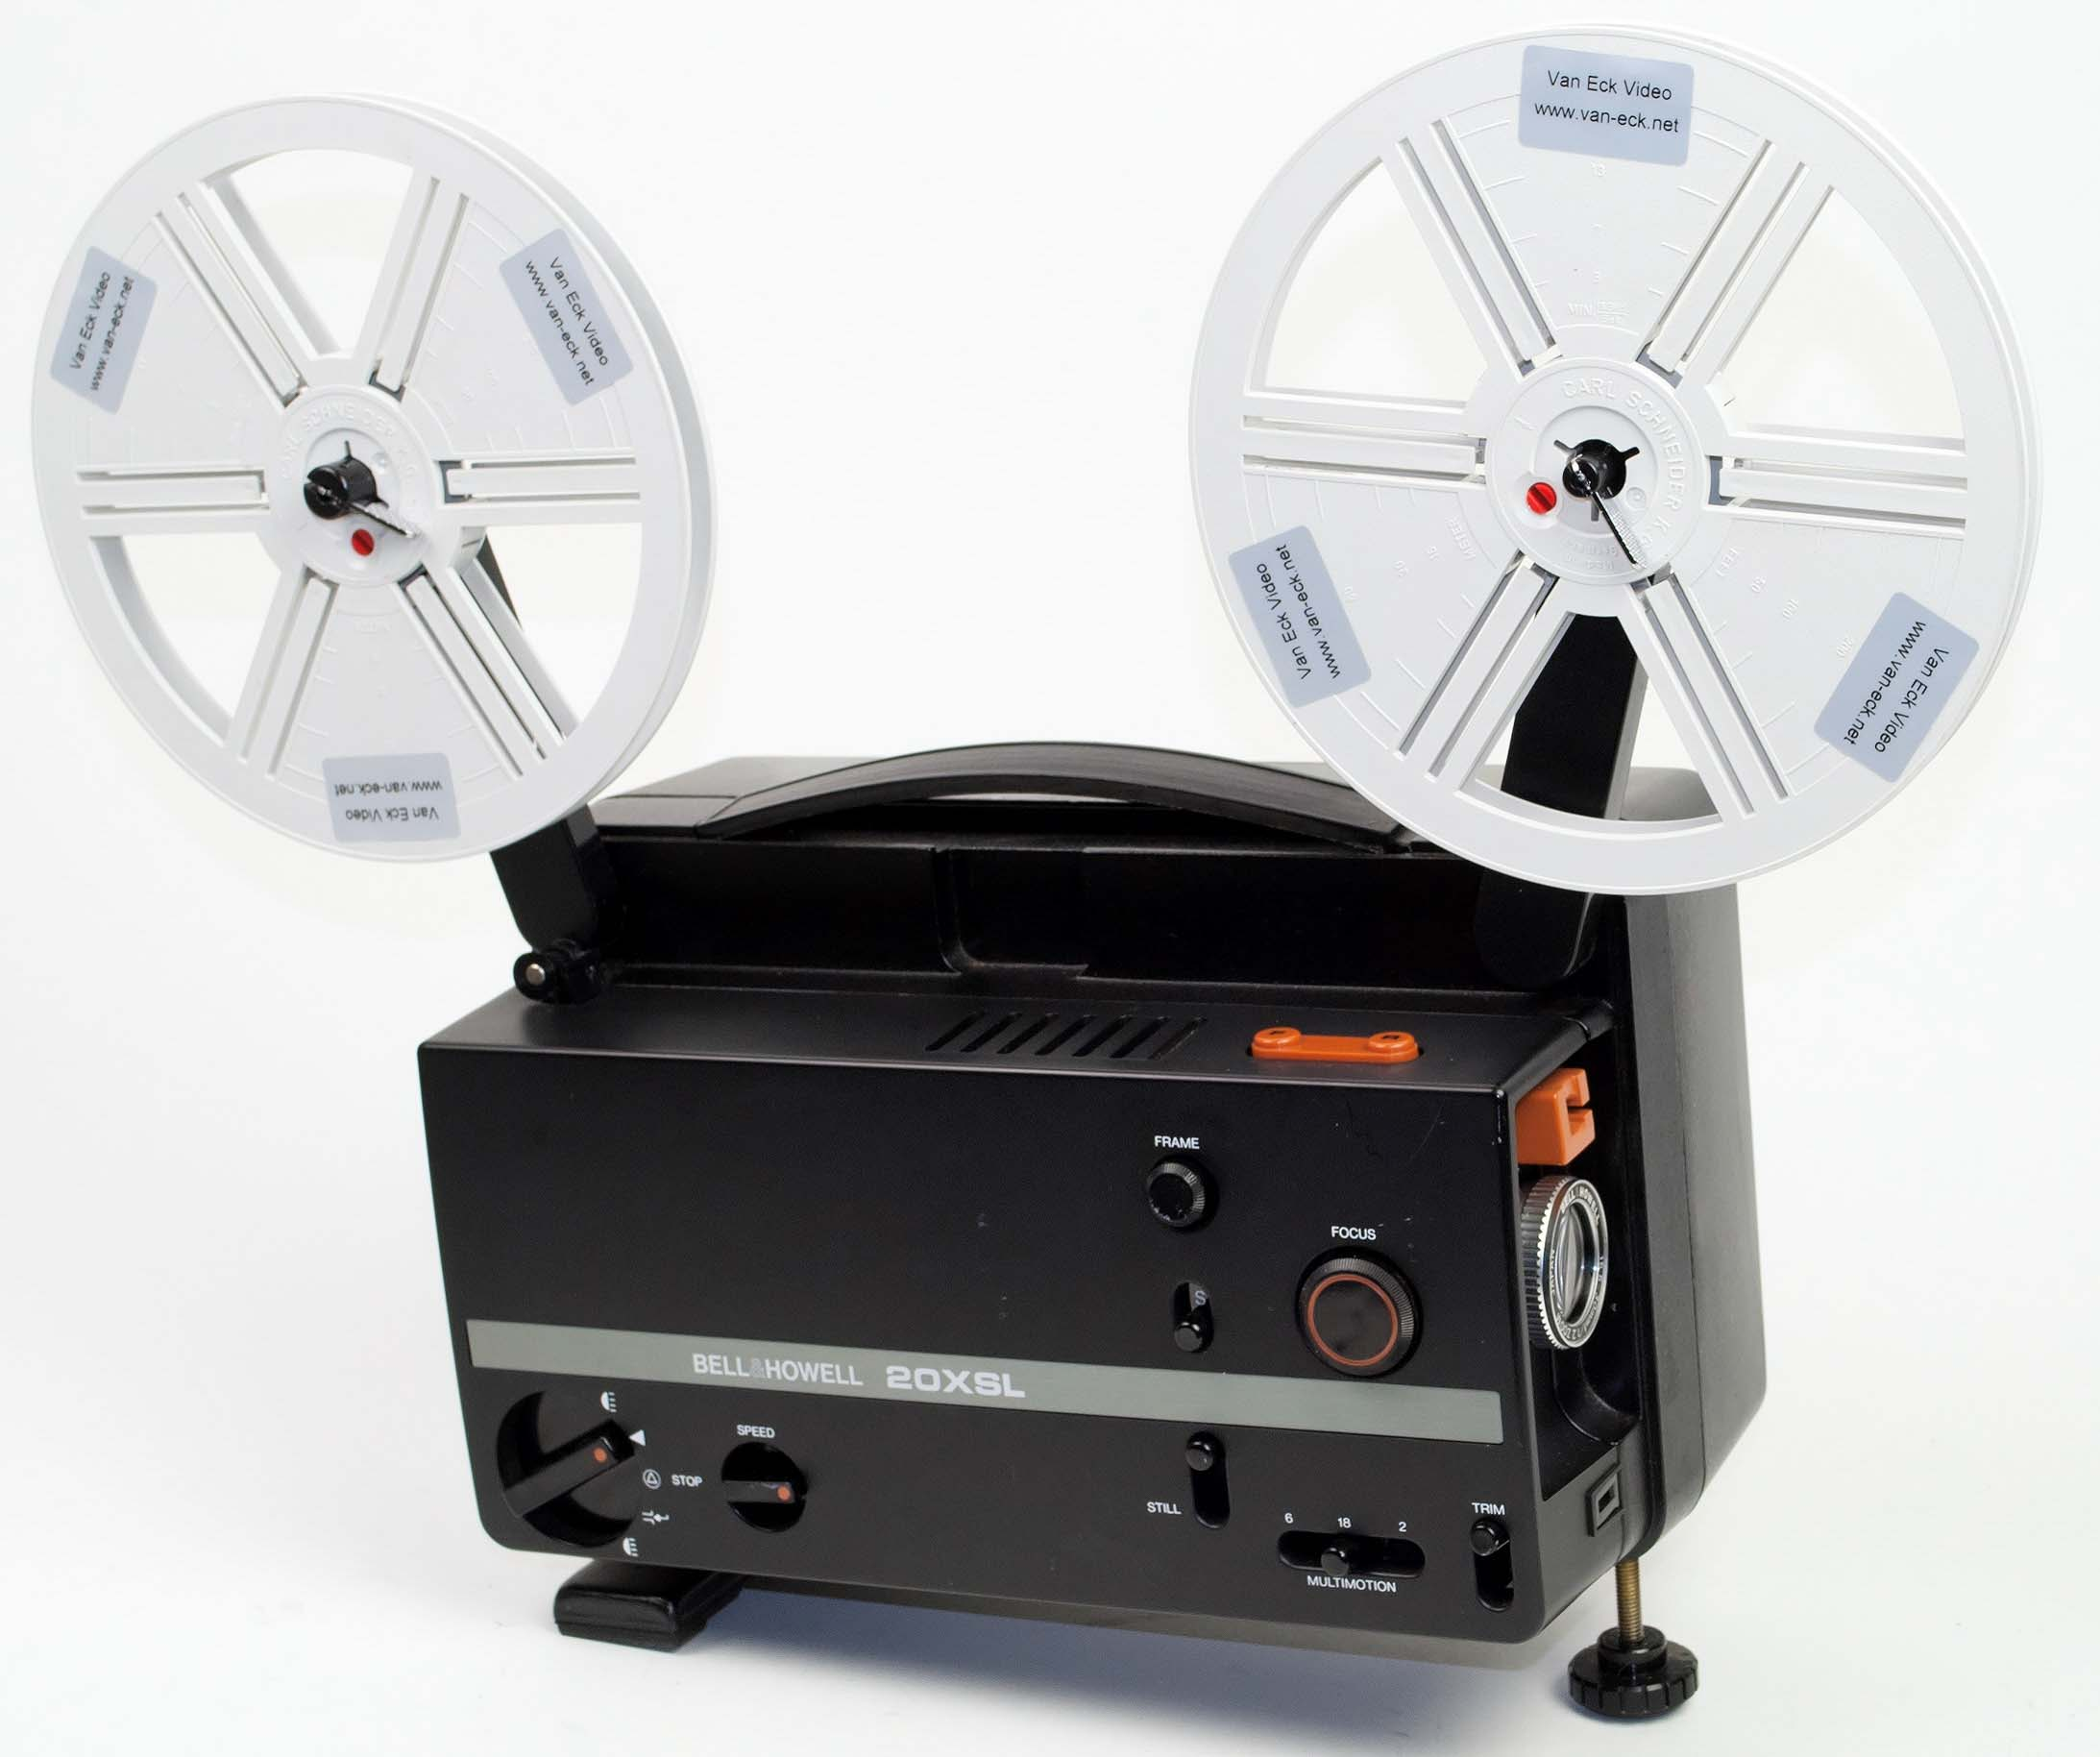 Bell & Howell 20XS, Film Projectors - Spare Parts and